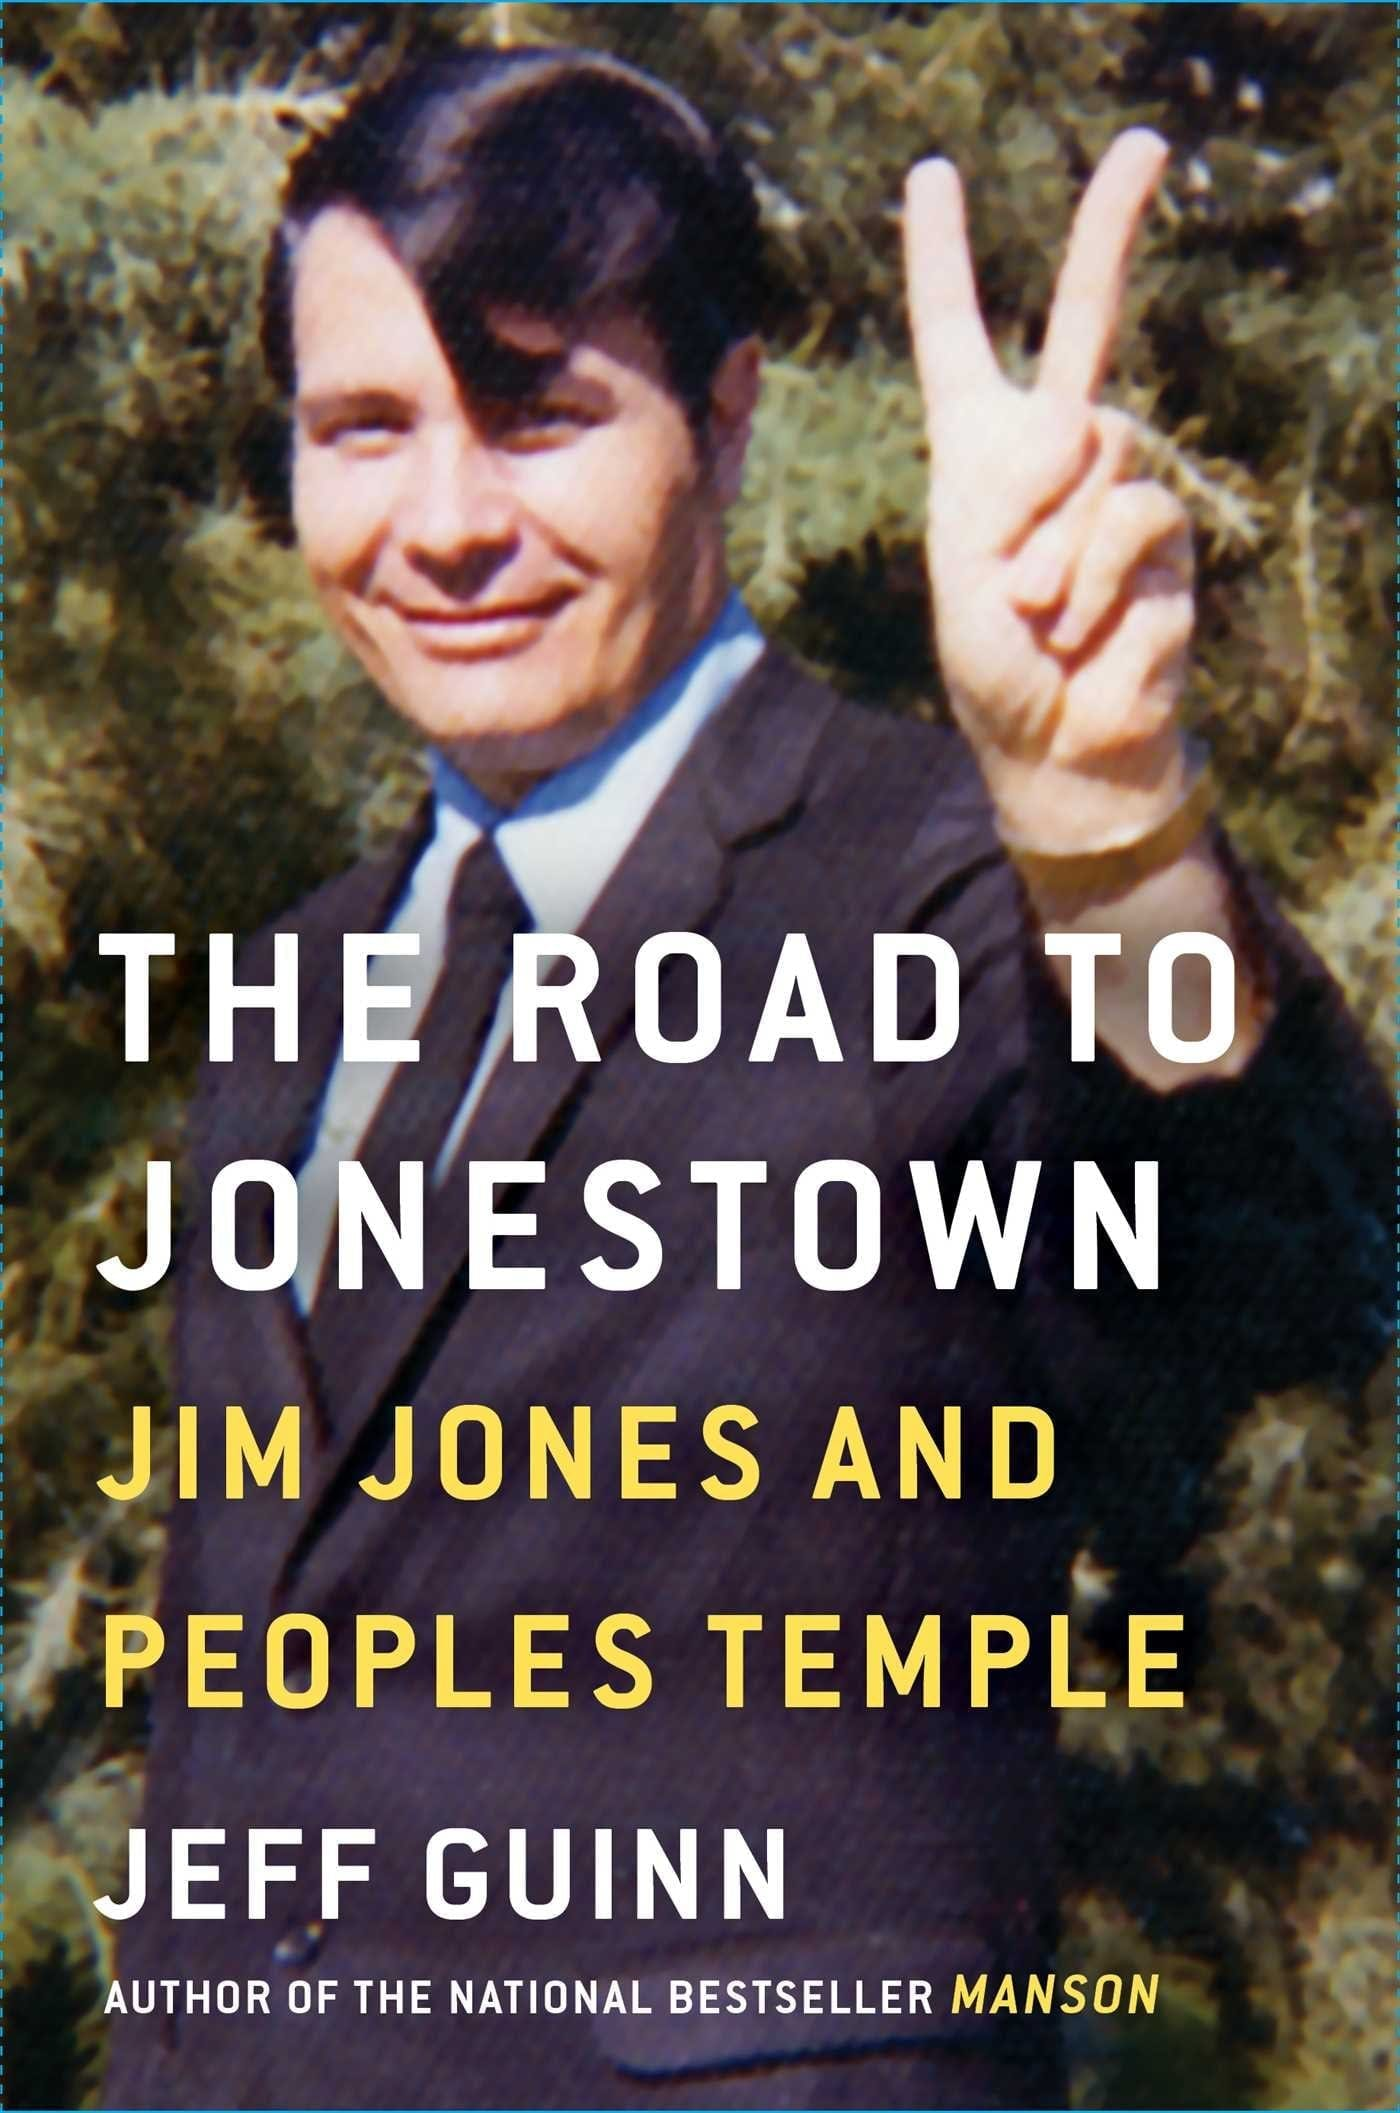 The Road to Jonestown: Jim Jones and the People's Temple by Jeff Guinn